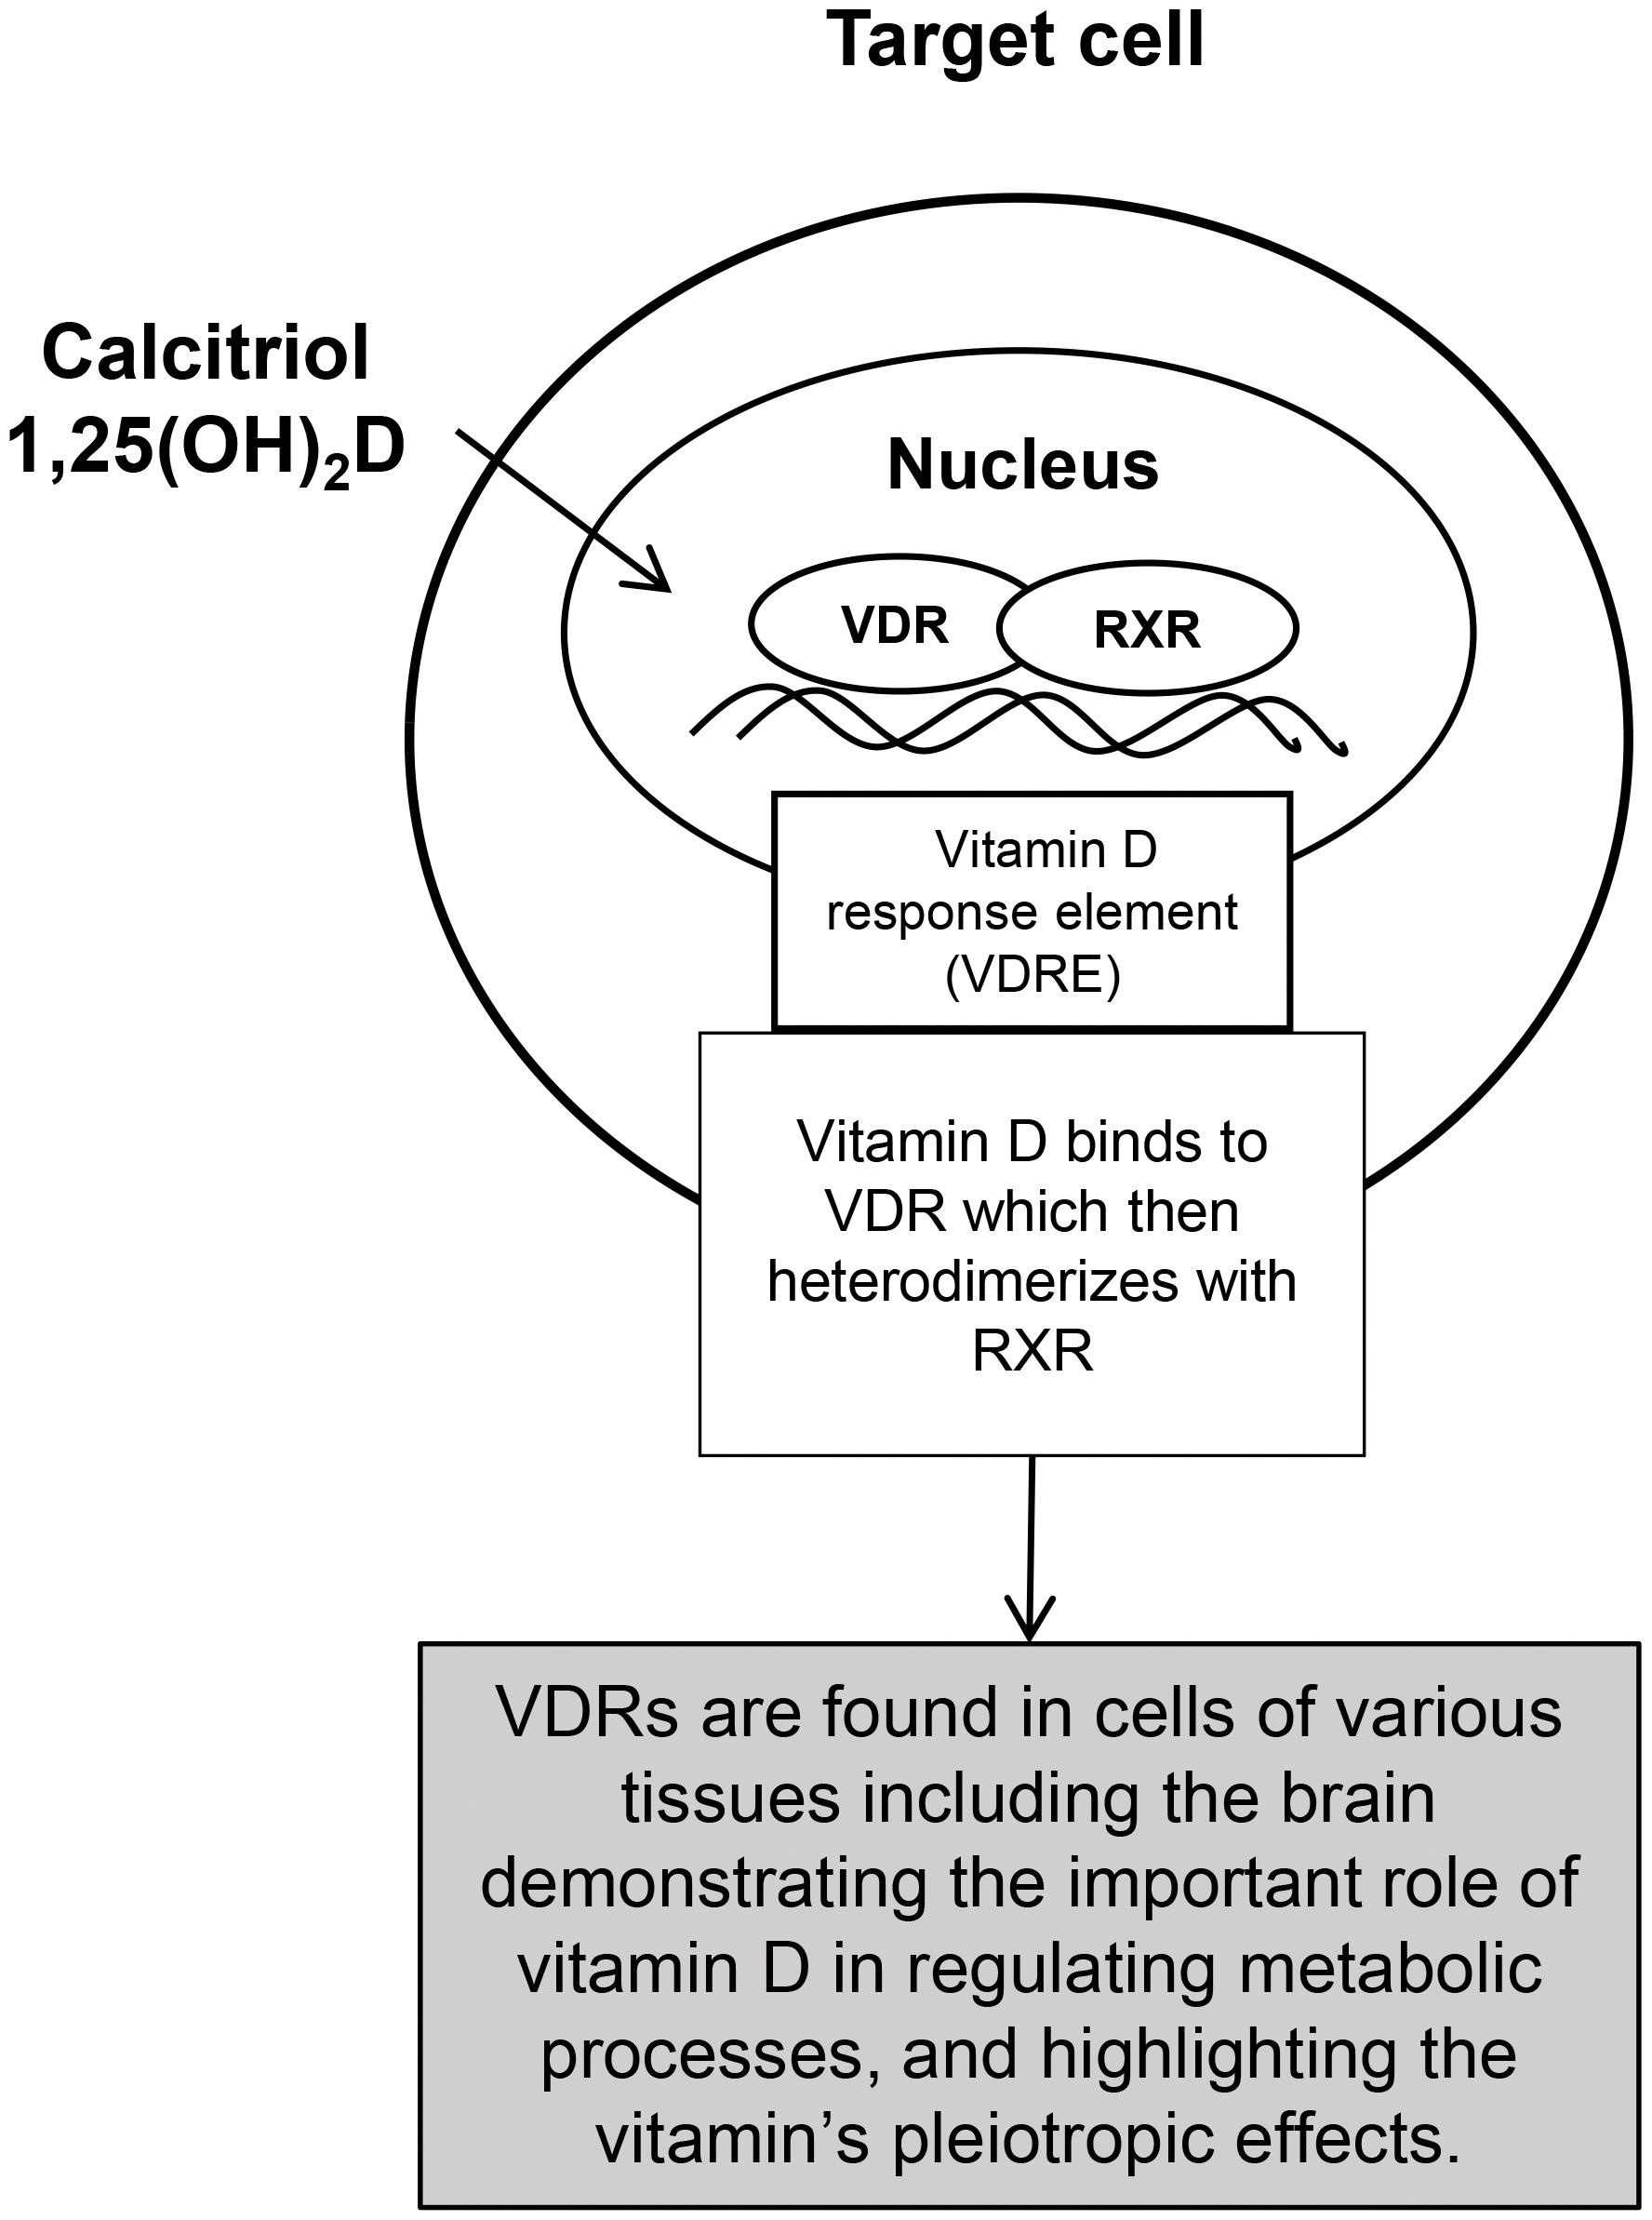 Interaction of calcitriol in the target cell in regulating metabolic processes such as brain health.